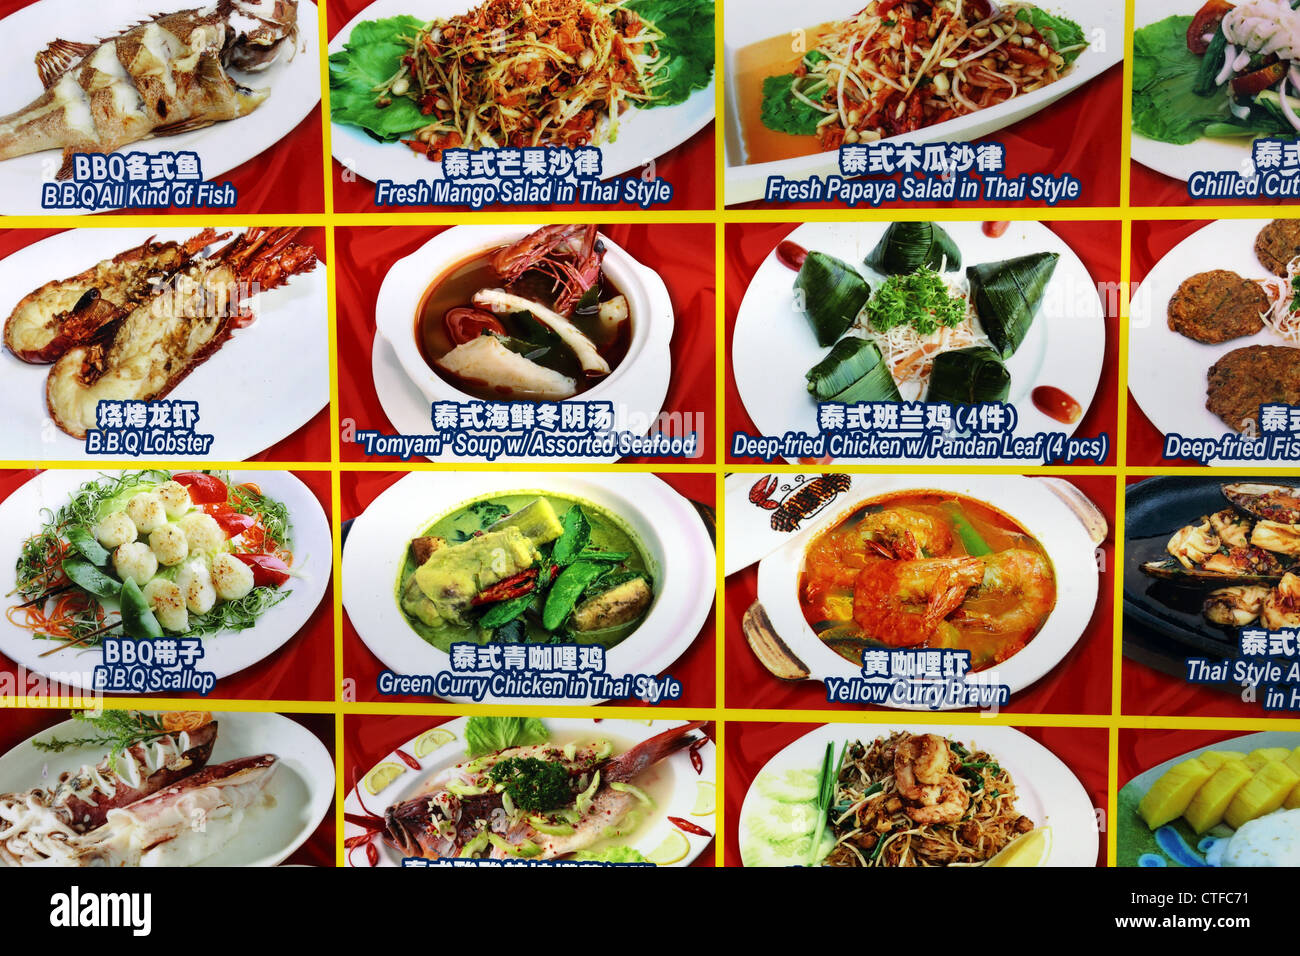 Restauration menus avec photos de chaque plat. Photo Stock